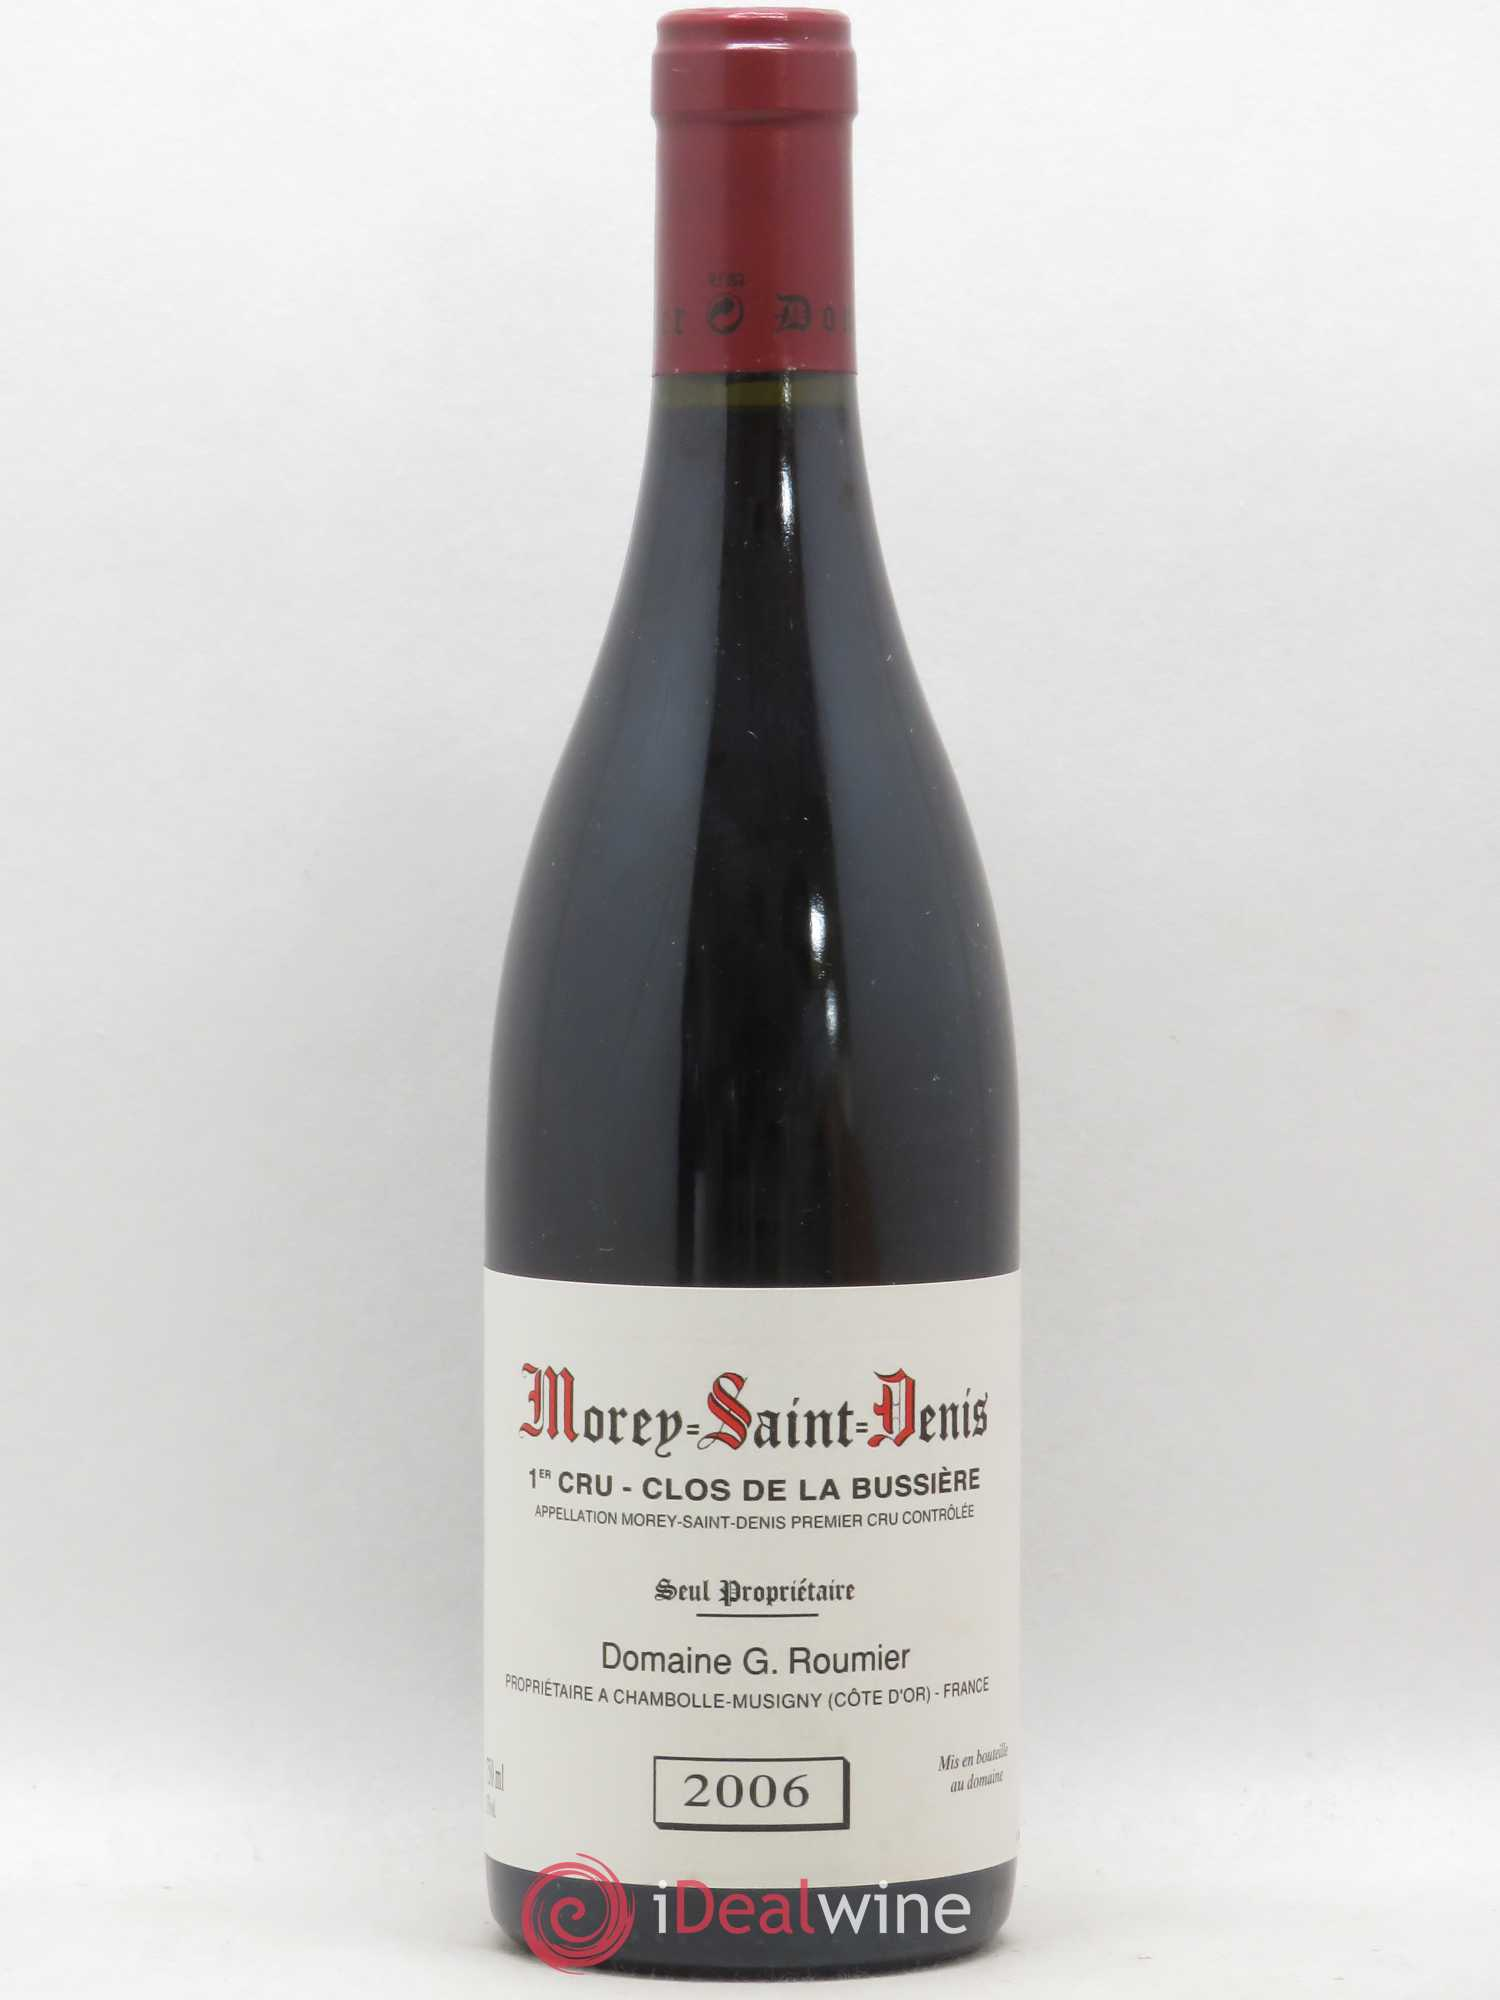 Morey Saint-Denis 1er Cru Clos de la Bussière Georges Roumier (Domaine) (no reserve) 2006 - Lot of 1 Bottle